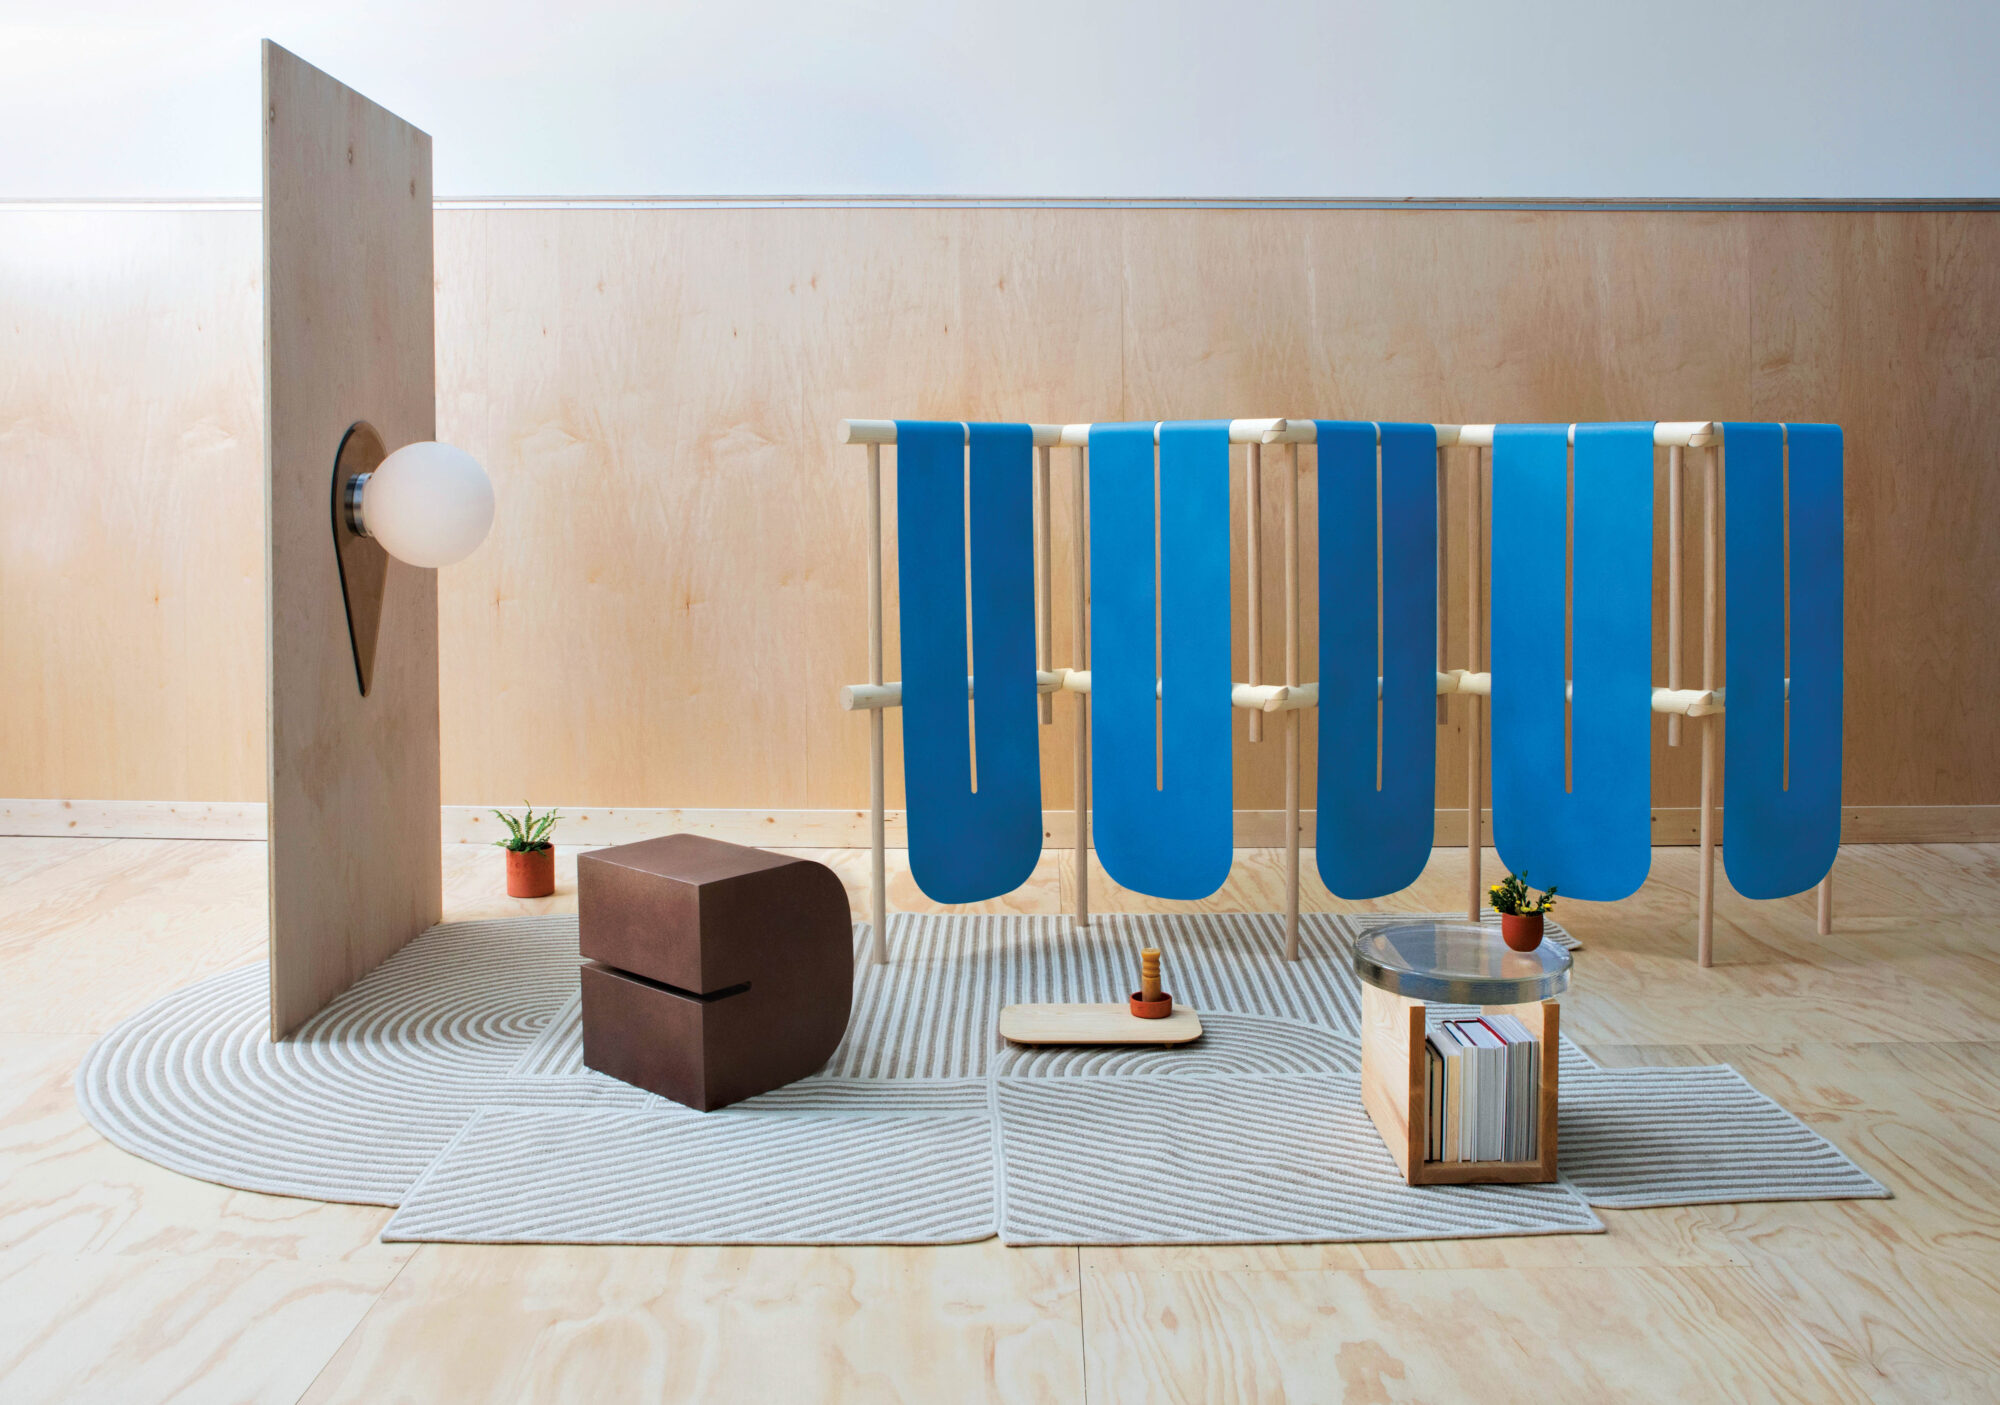 Hanging blue panels behind furnishings and striped rug